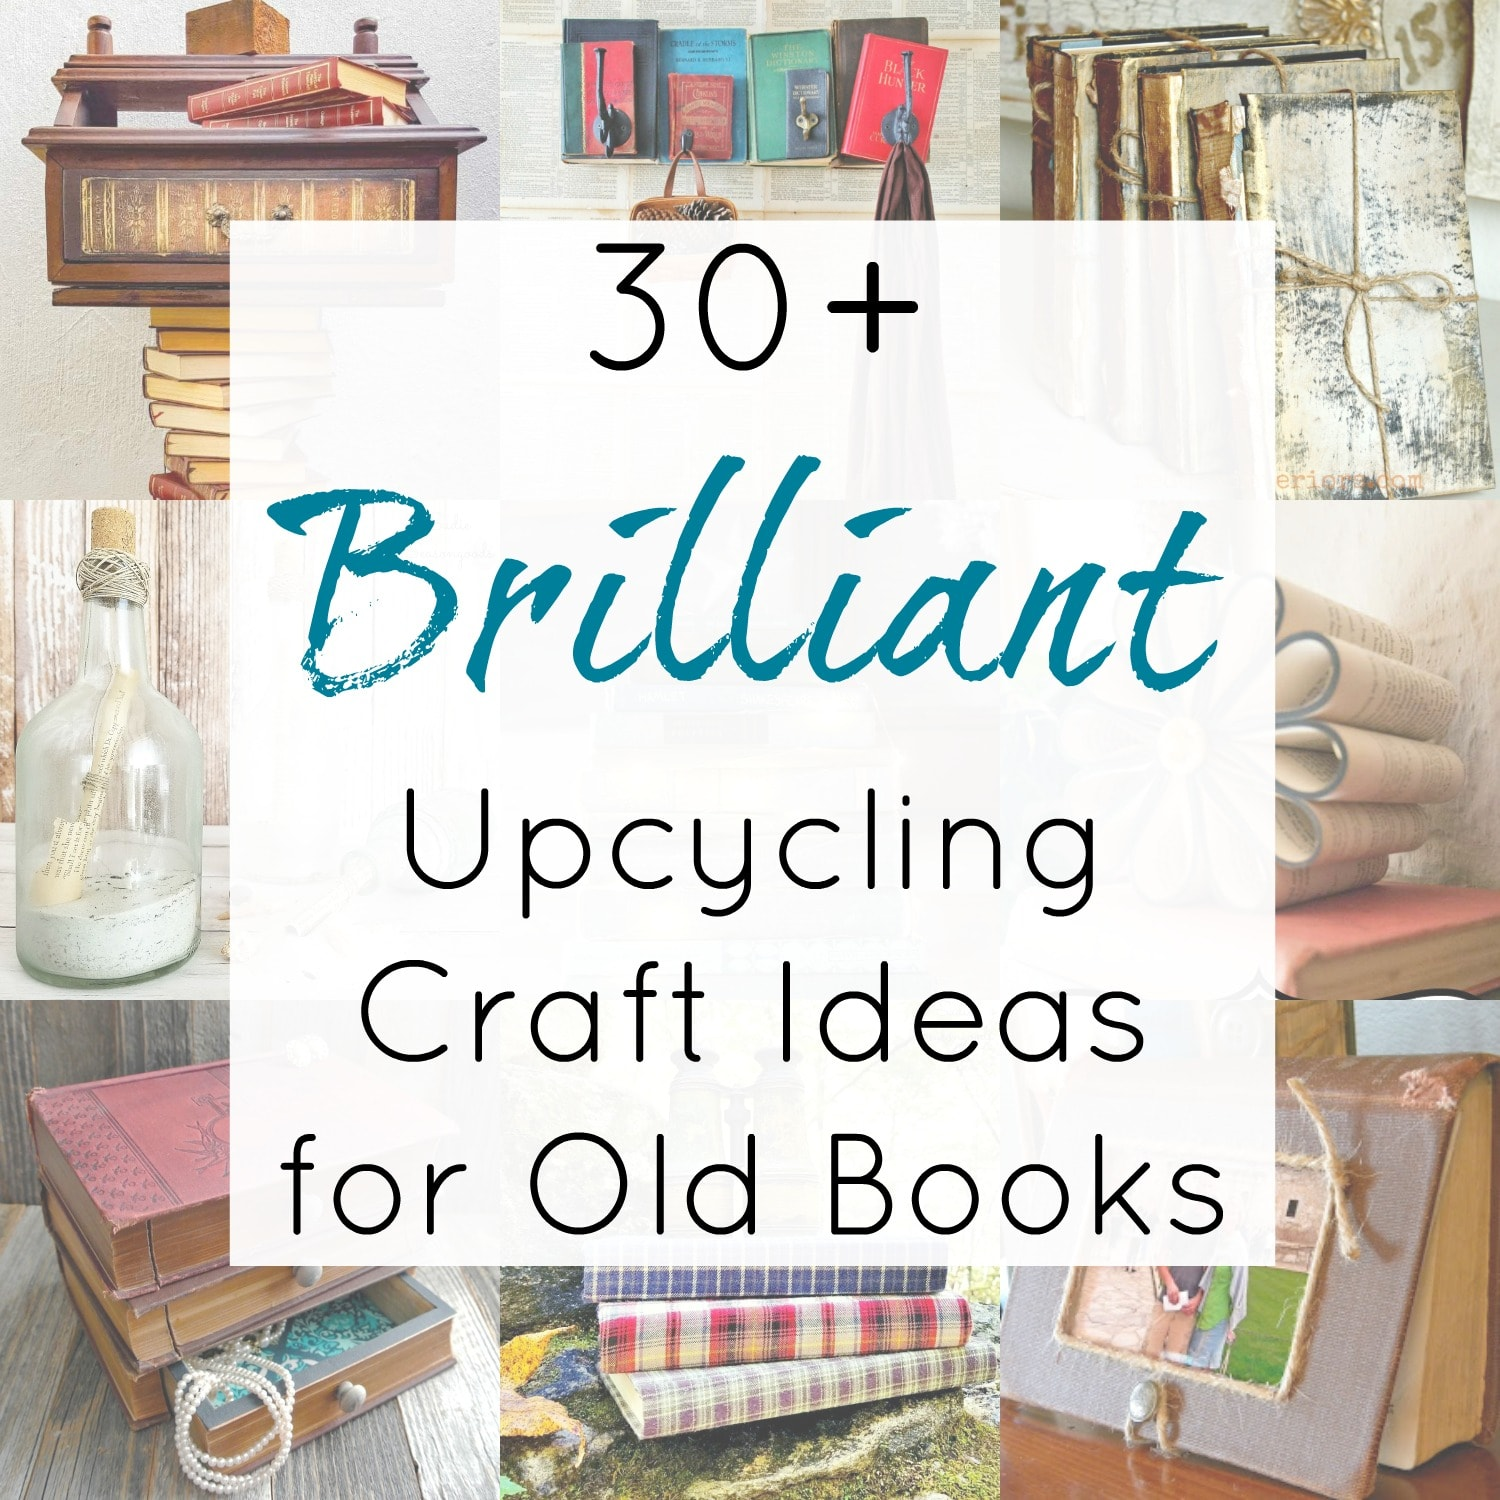 30+ Upcycling Ideas for Old Books